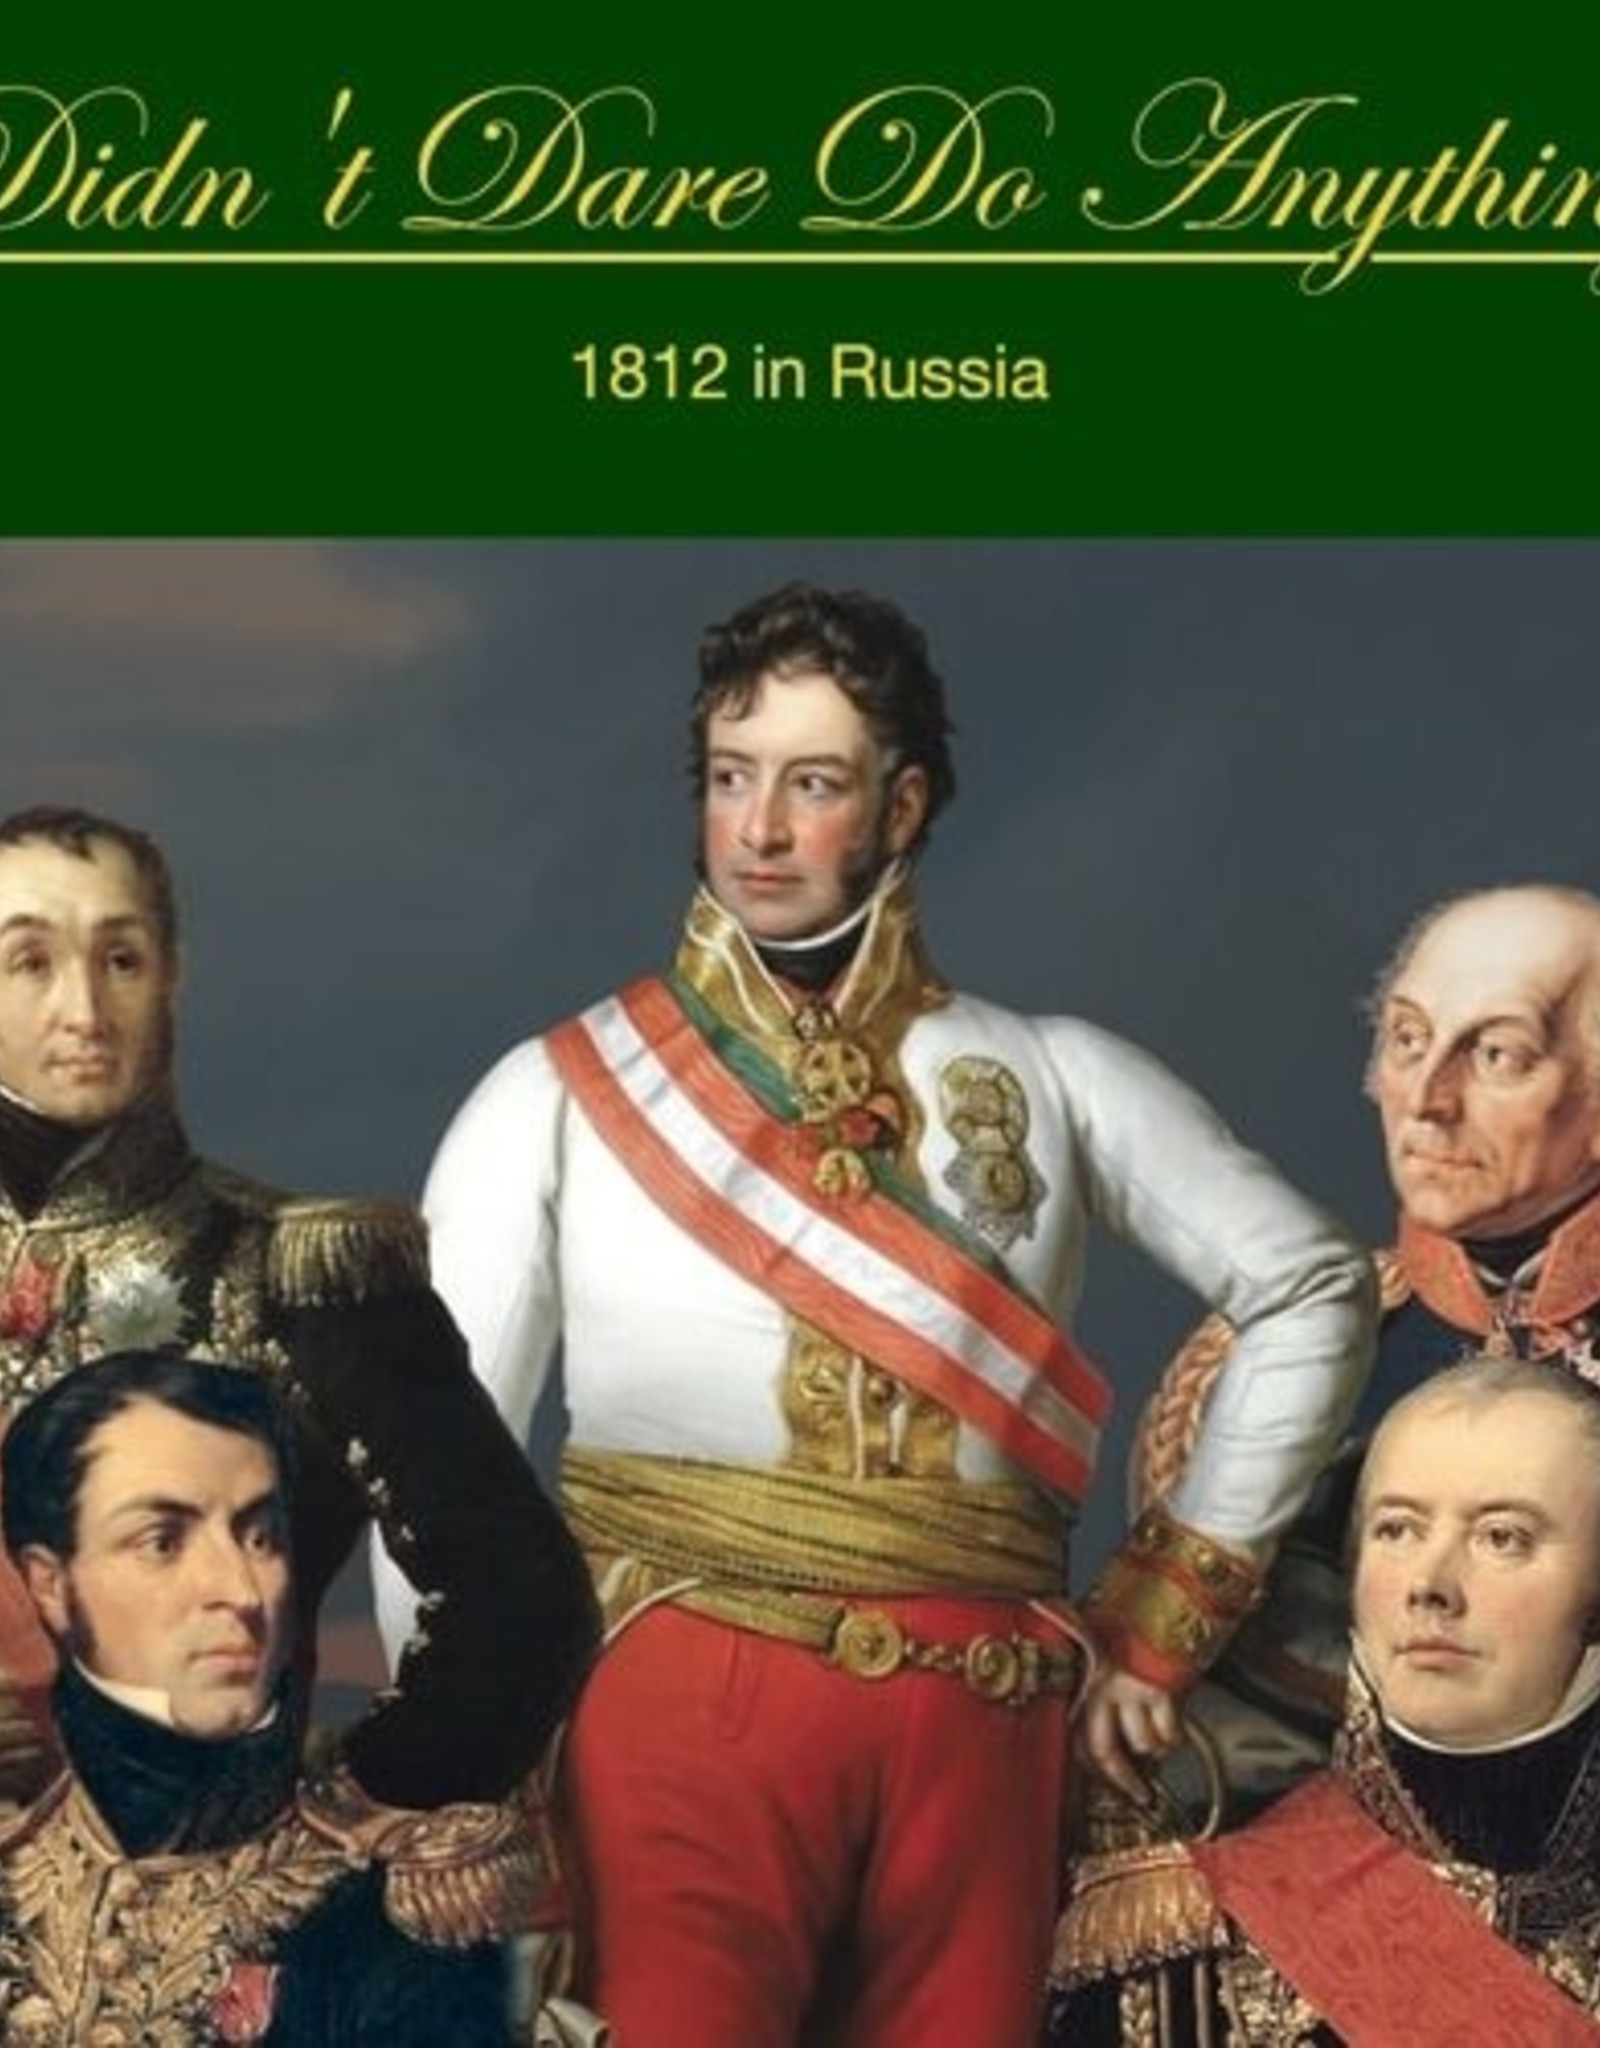 The Wargaming Company Didn't Dare Do Anything:  1812 in Russia (The Flanks)